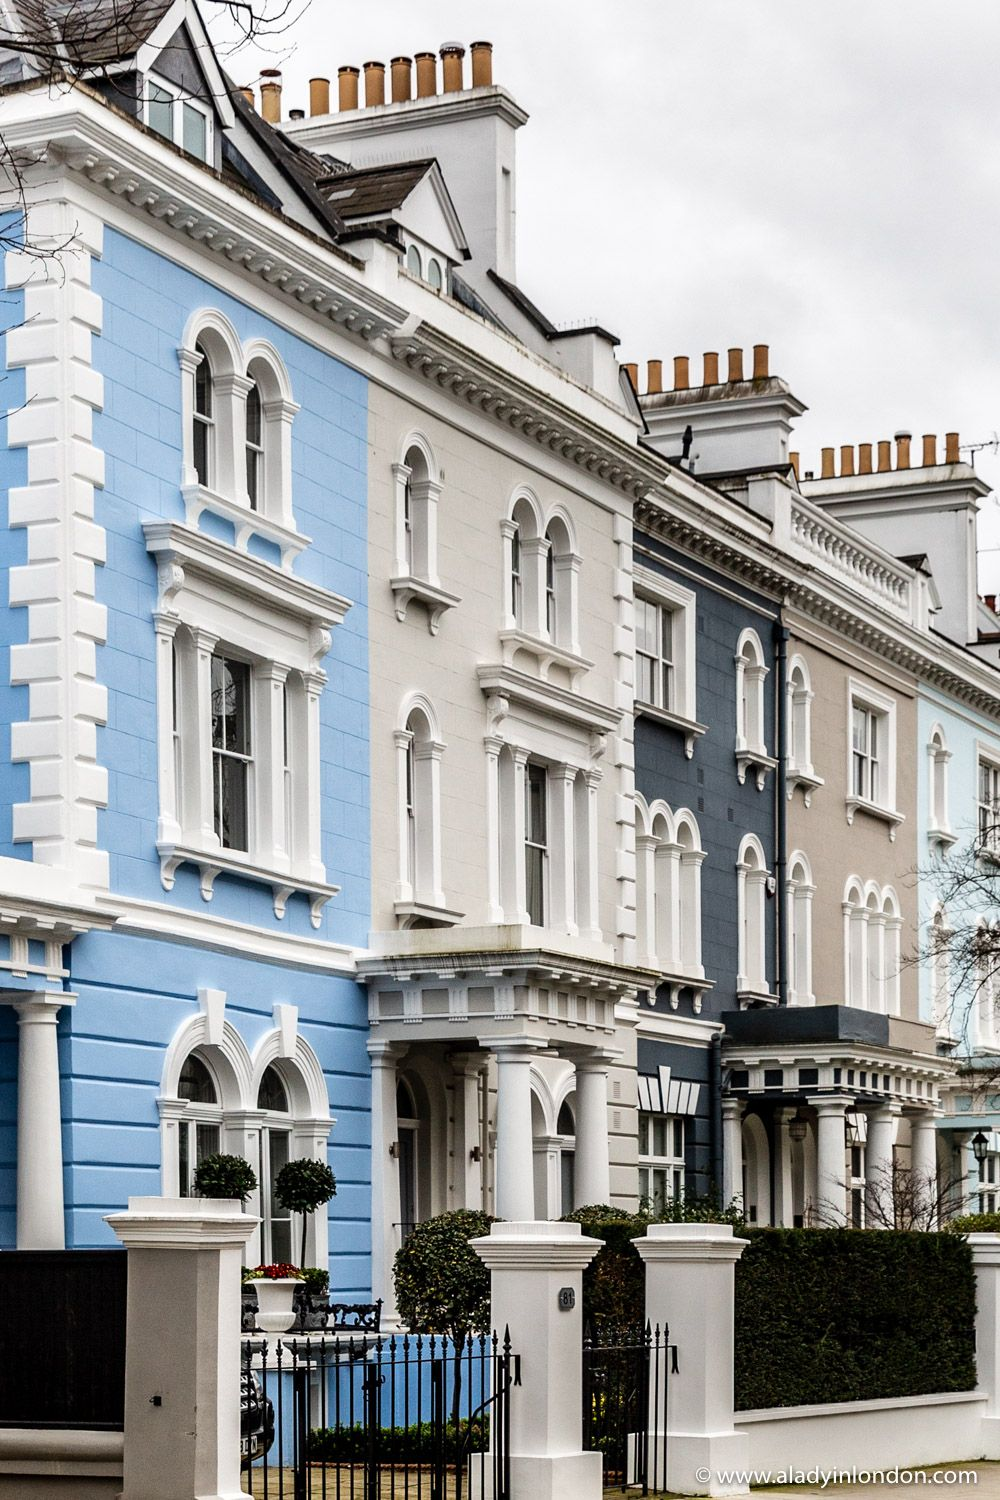 A Row of Colorful Houses in Notting Hill, London